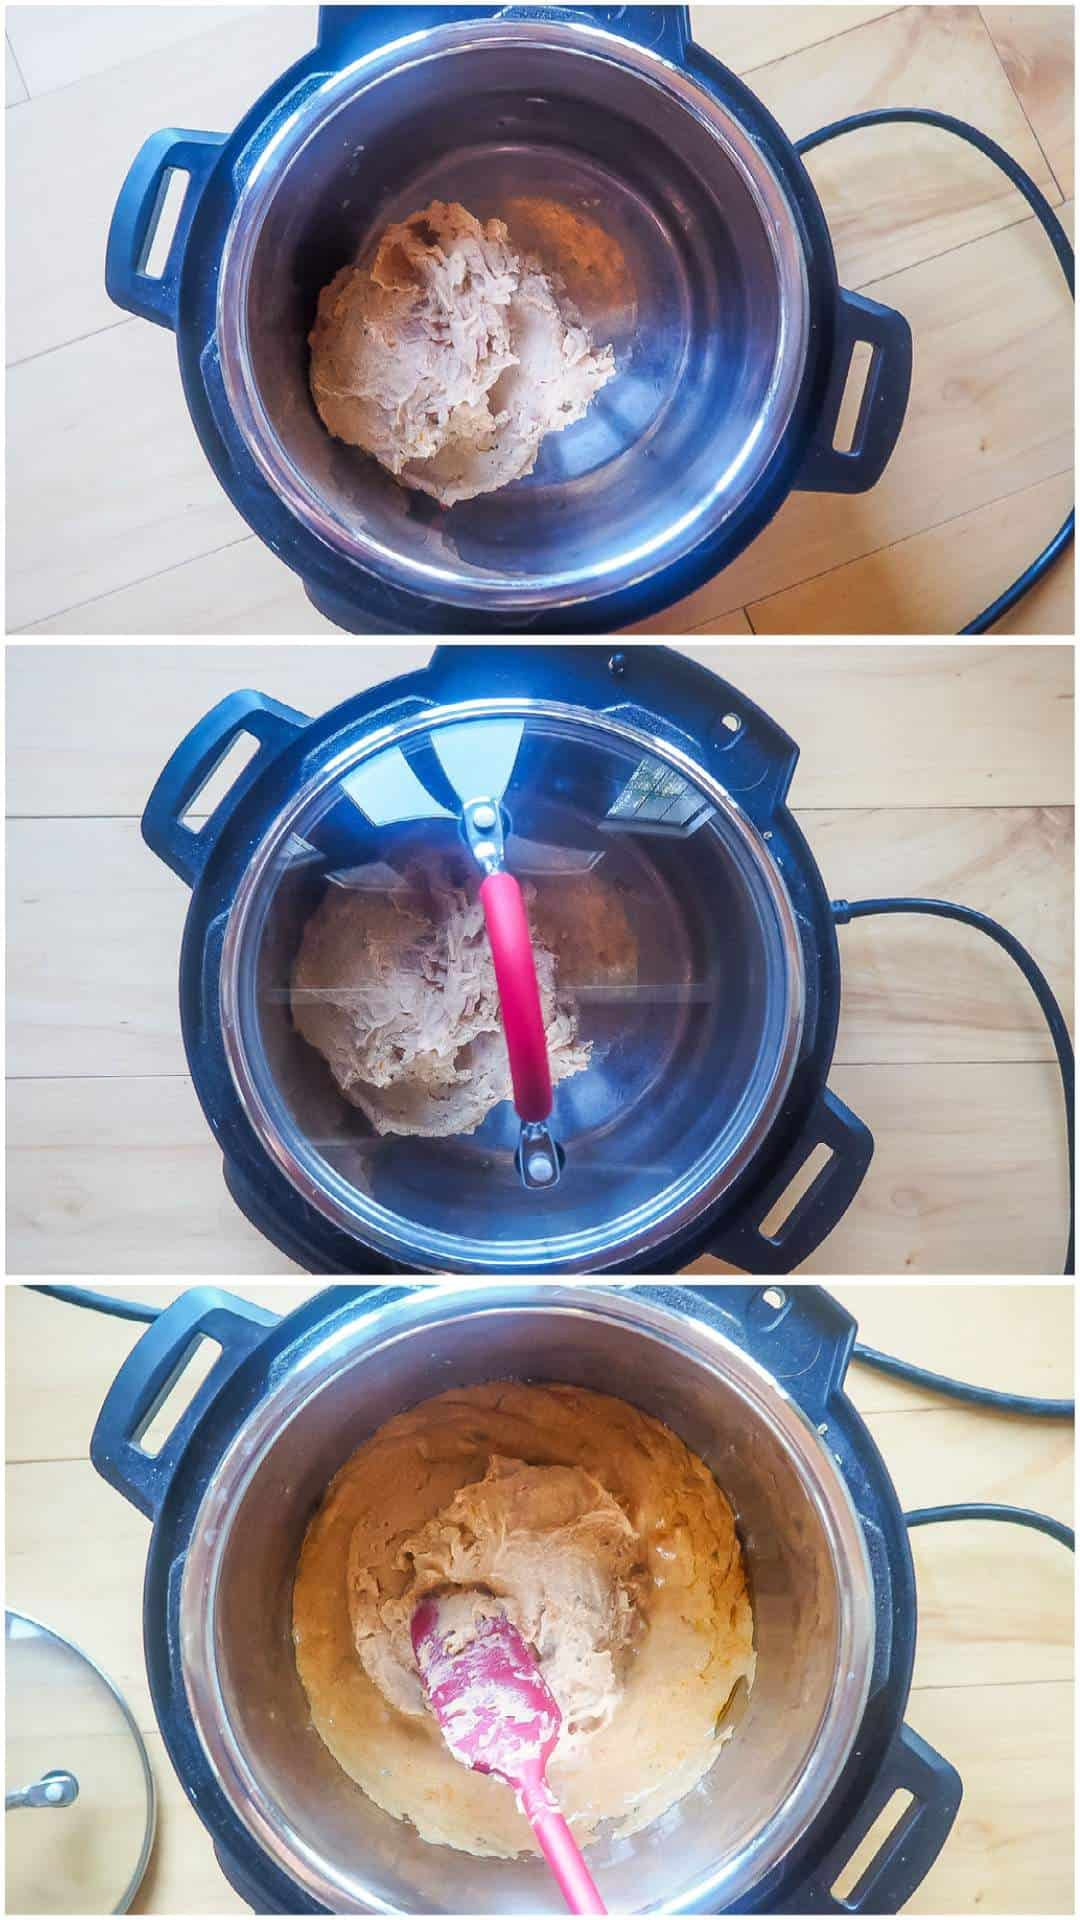 Three process images for melting queso in an Instant Pot.